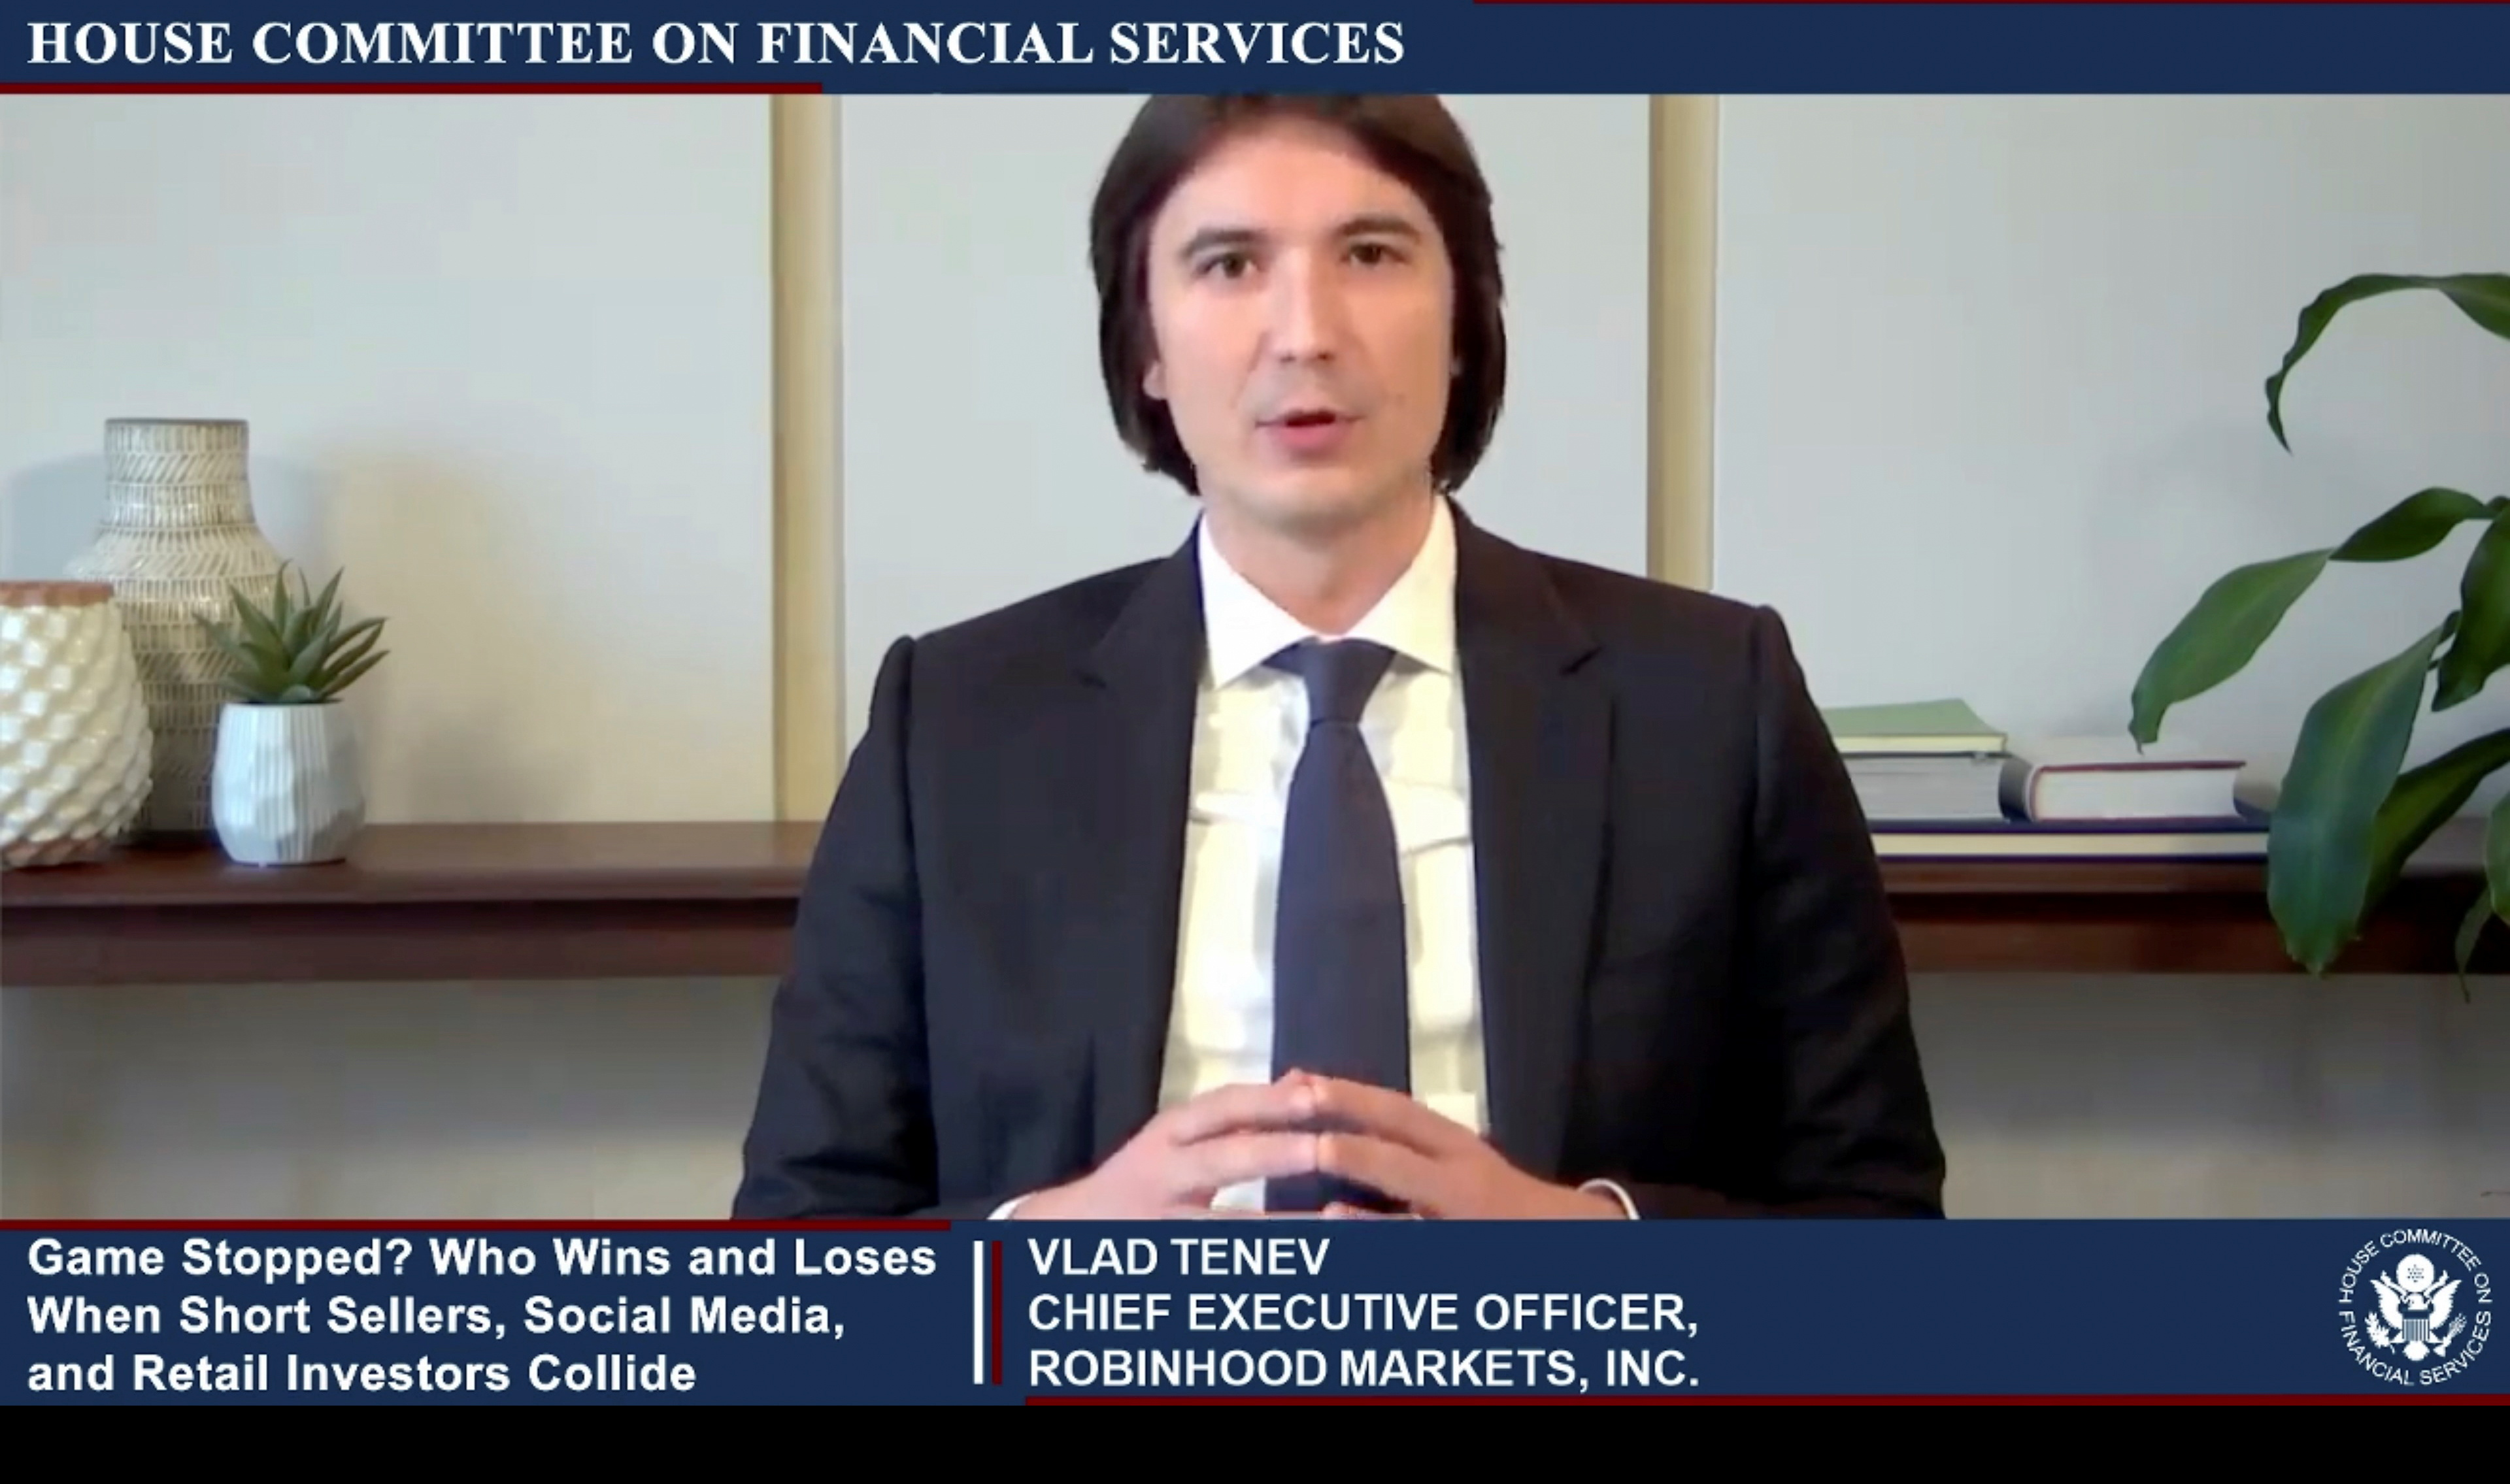 "Vlad Tenev, CEO of Robinhood Markets, is seen testifying about GameStop trading in a frame grab from video during an entirely virtual hearing of the U.S. House of Representatives Committee on Financial Services entitled ""Game Stopped? Who Wins and Loses When Short Sellers, Social Media, and Retail Investors Collide?"", in Washington, U.S., February 18, 2021.   House Committee on Financial Services/Handout via Reuters"